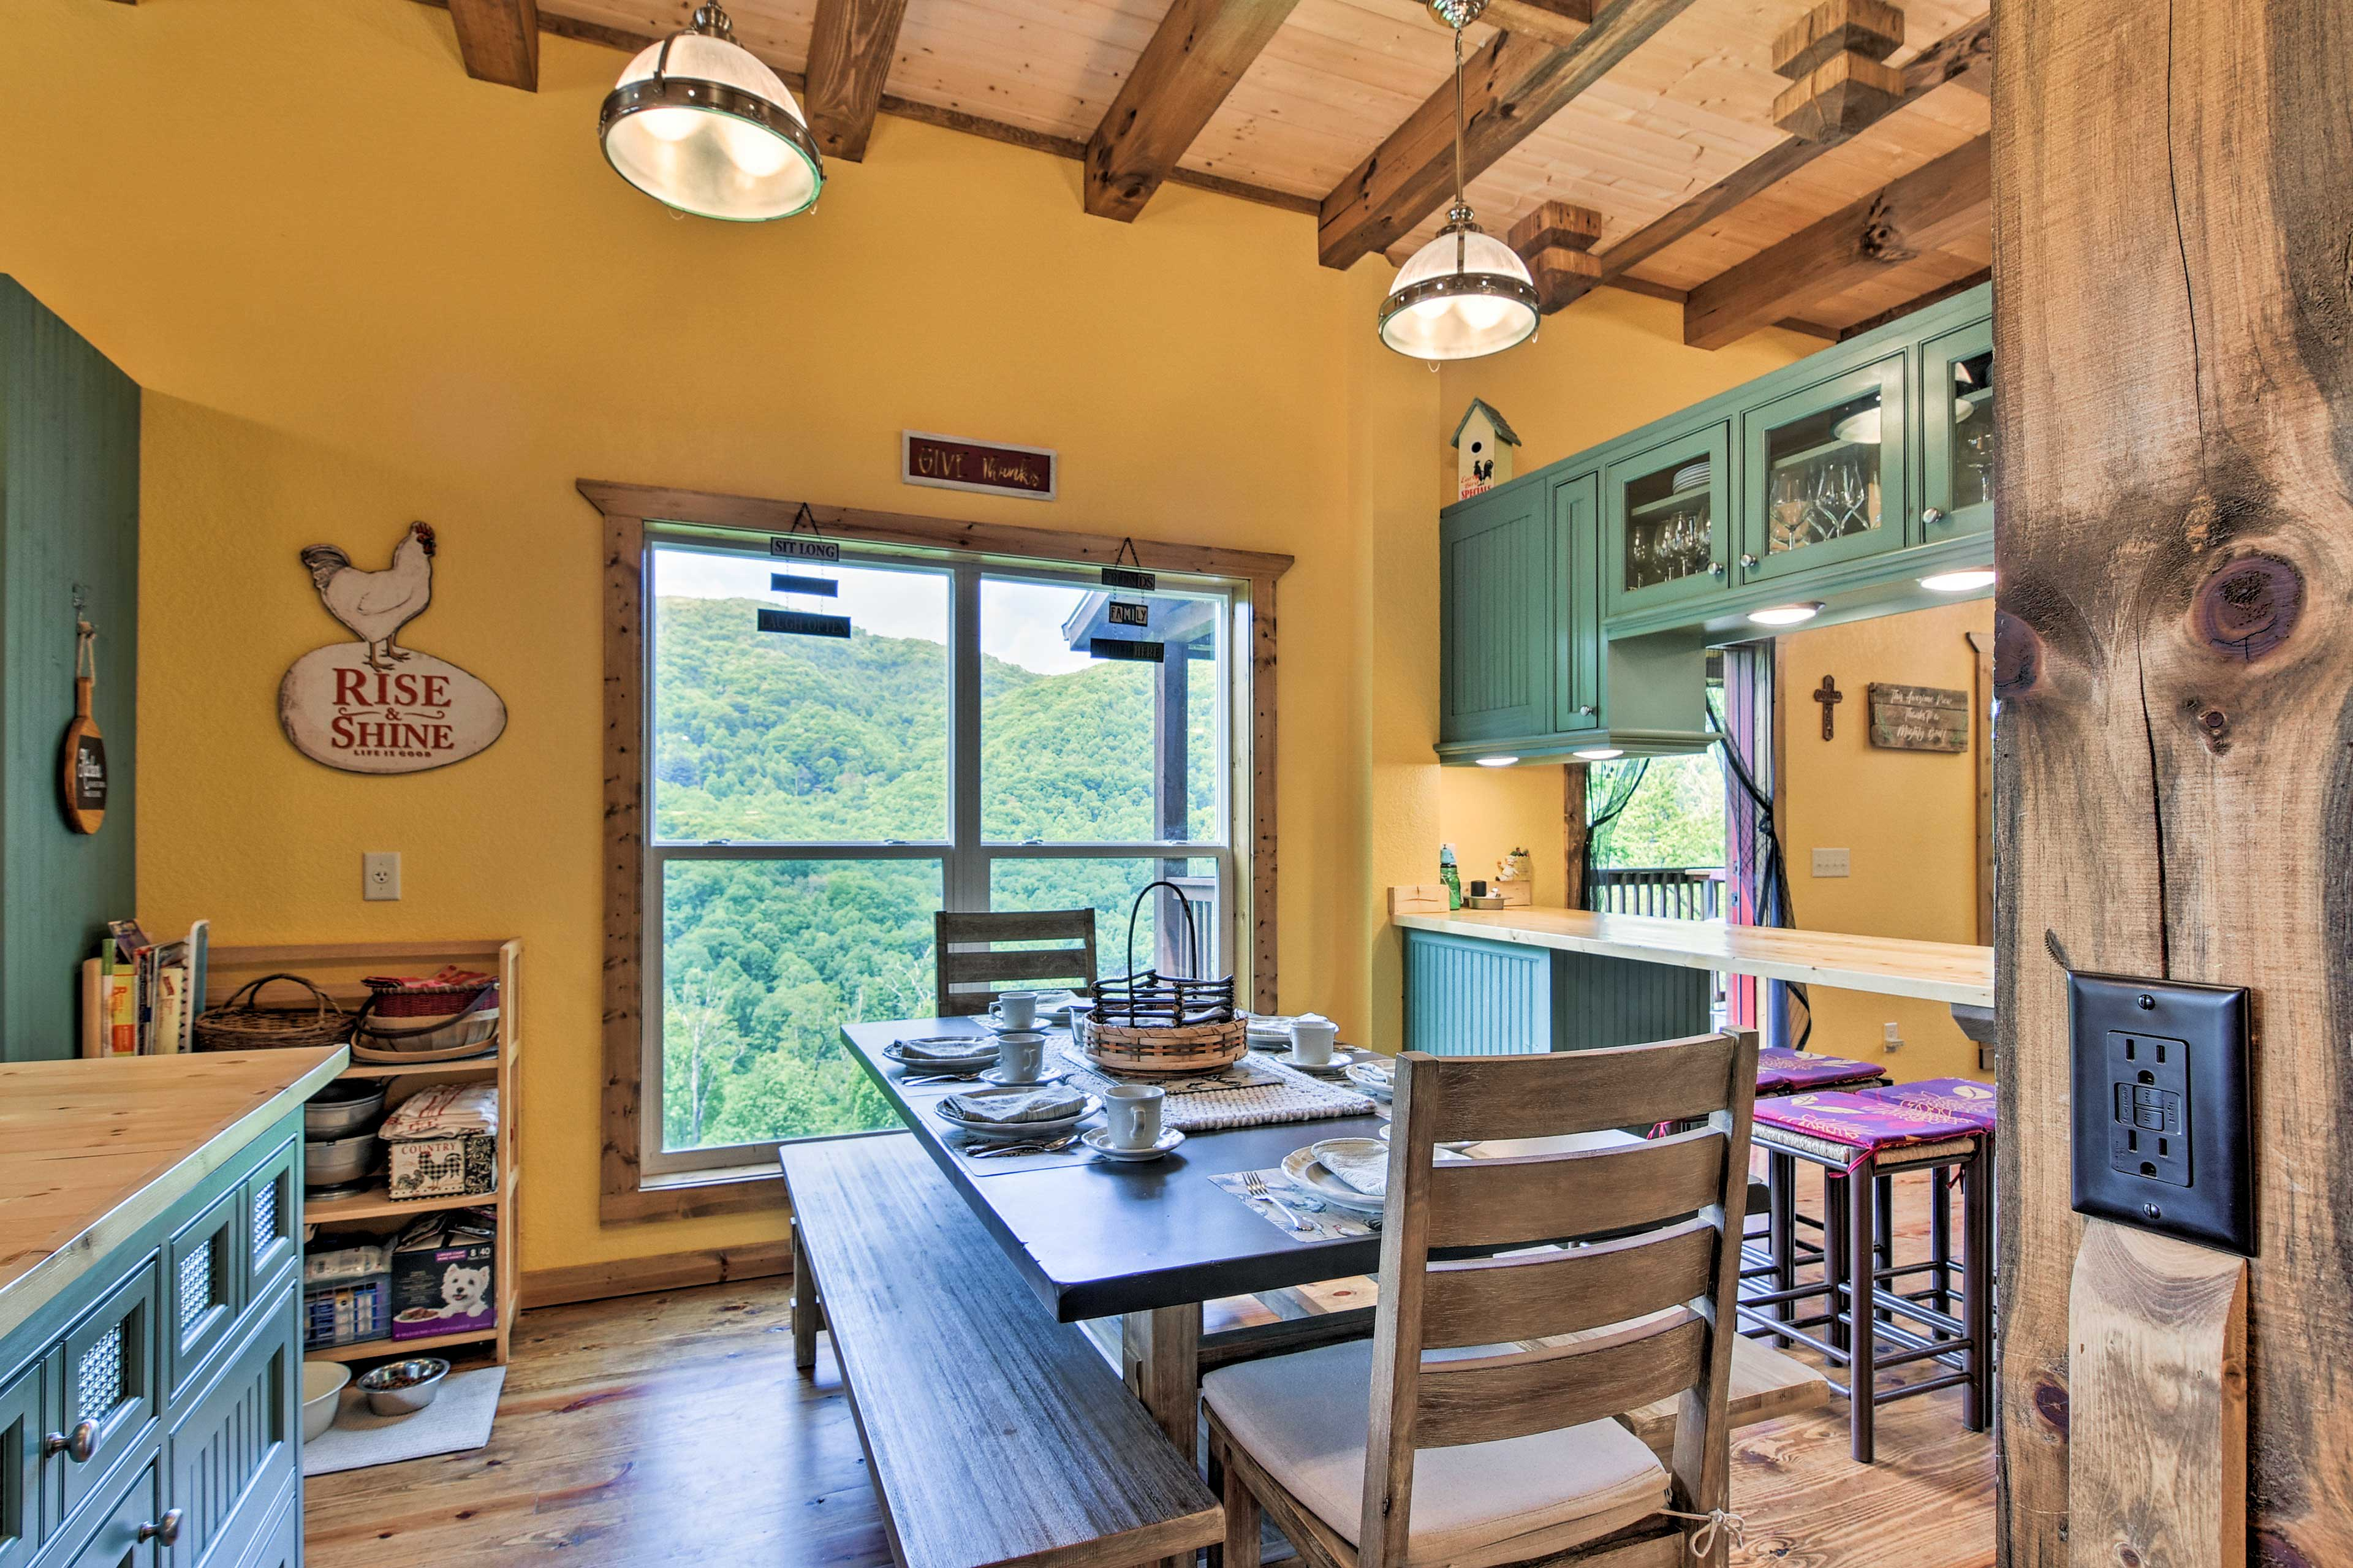 Rise & shine - mornings will be delightful with a kitchen like this!